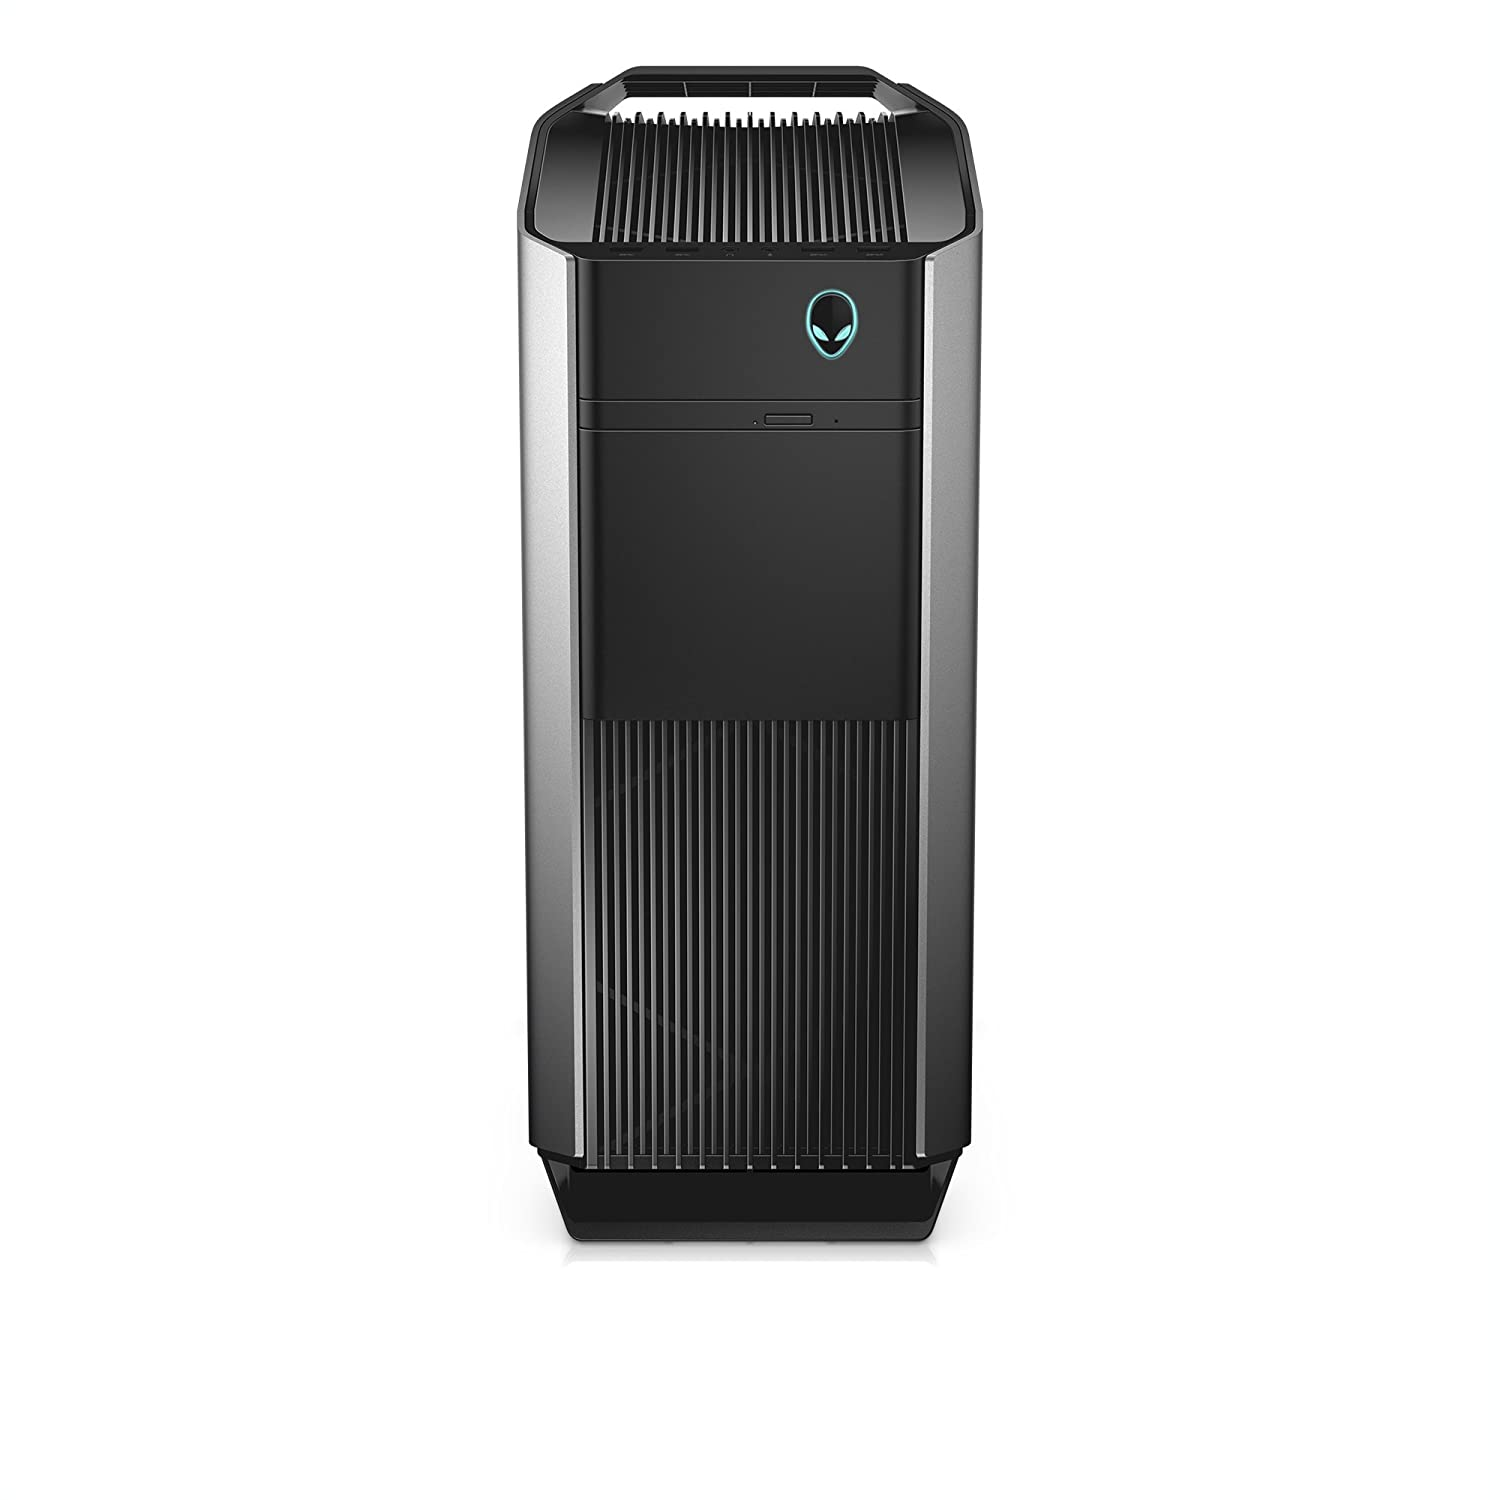 Dell Alienware Aurora Gaming PC Desktop, Liquid Cooled i7-8700K, NVIDIA GeForce RTX 2080 8GB DDR6 16GB 2666Mhz RAM, 256GB PCIe NVMe SSD + 2TB HDD, AWAUR7-7066SLV-PUS R7, VR Ready